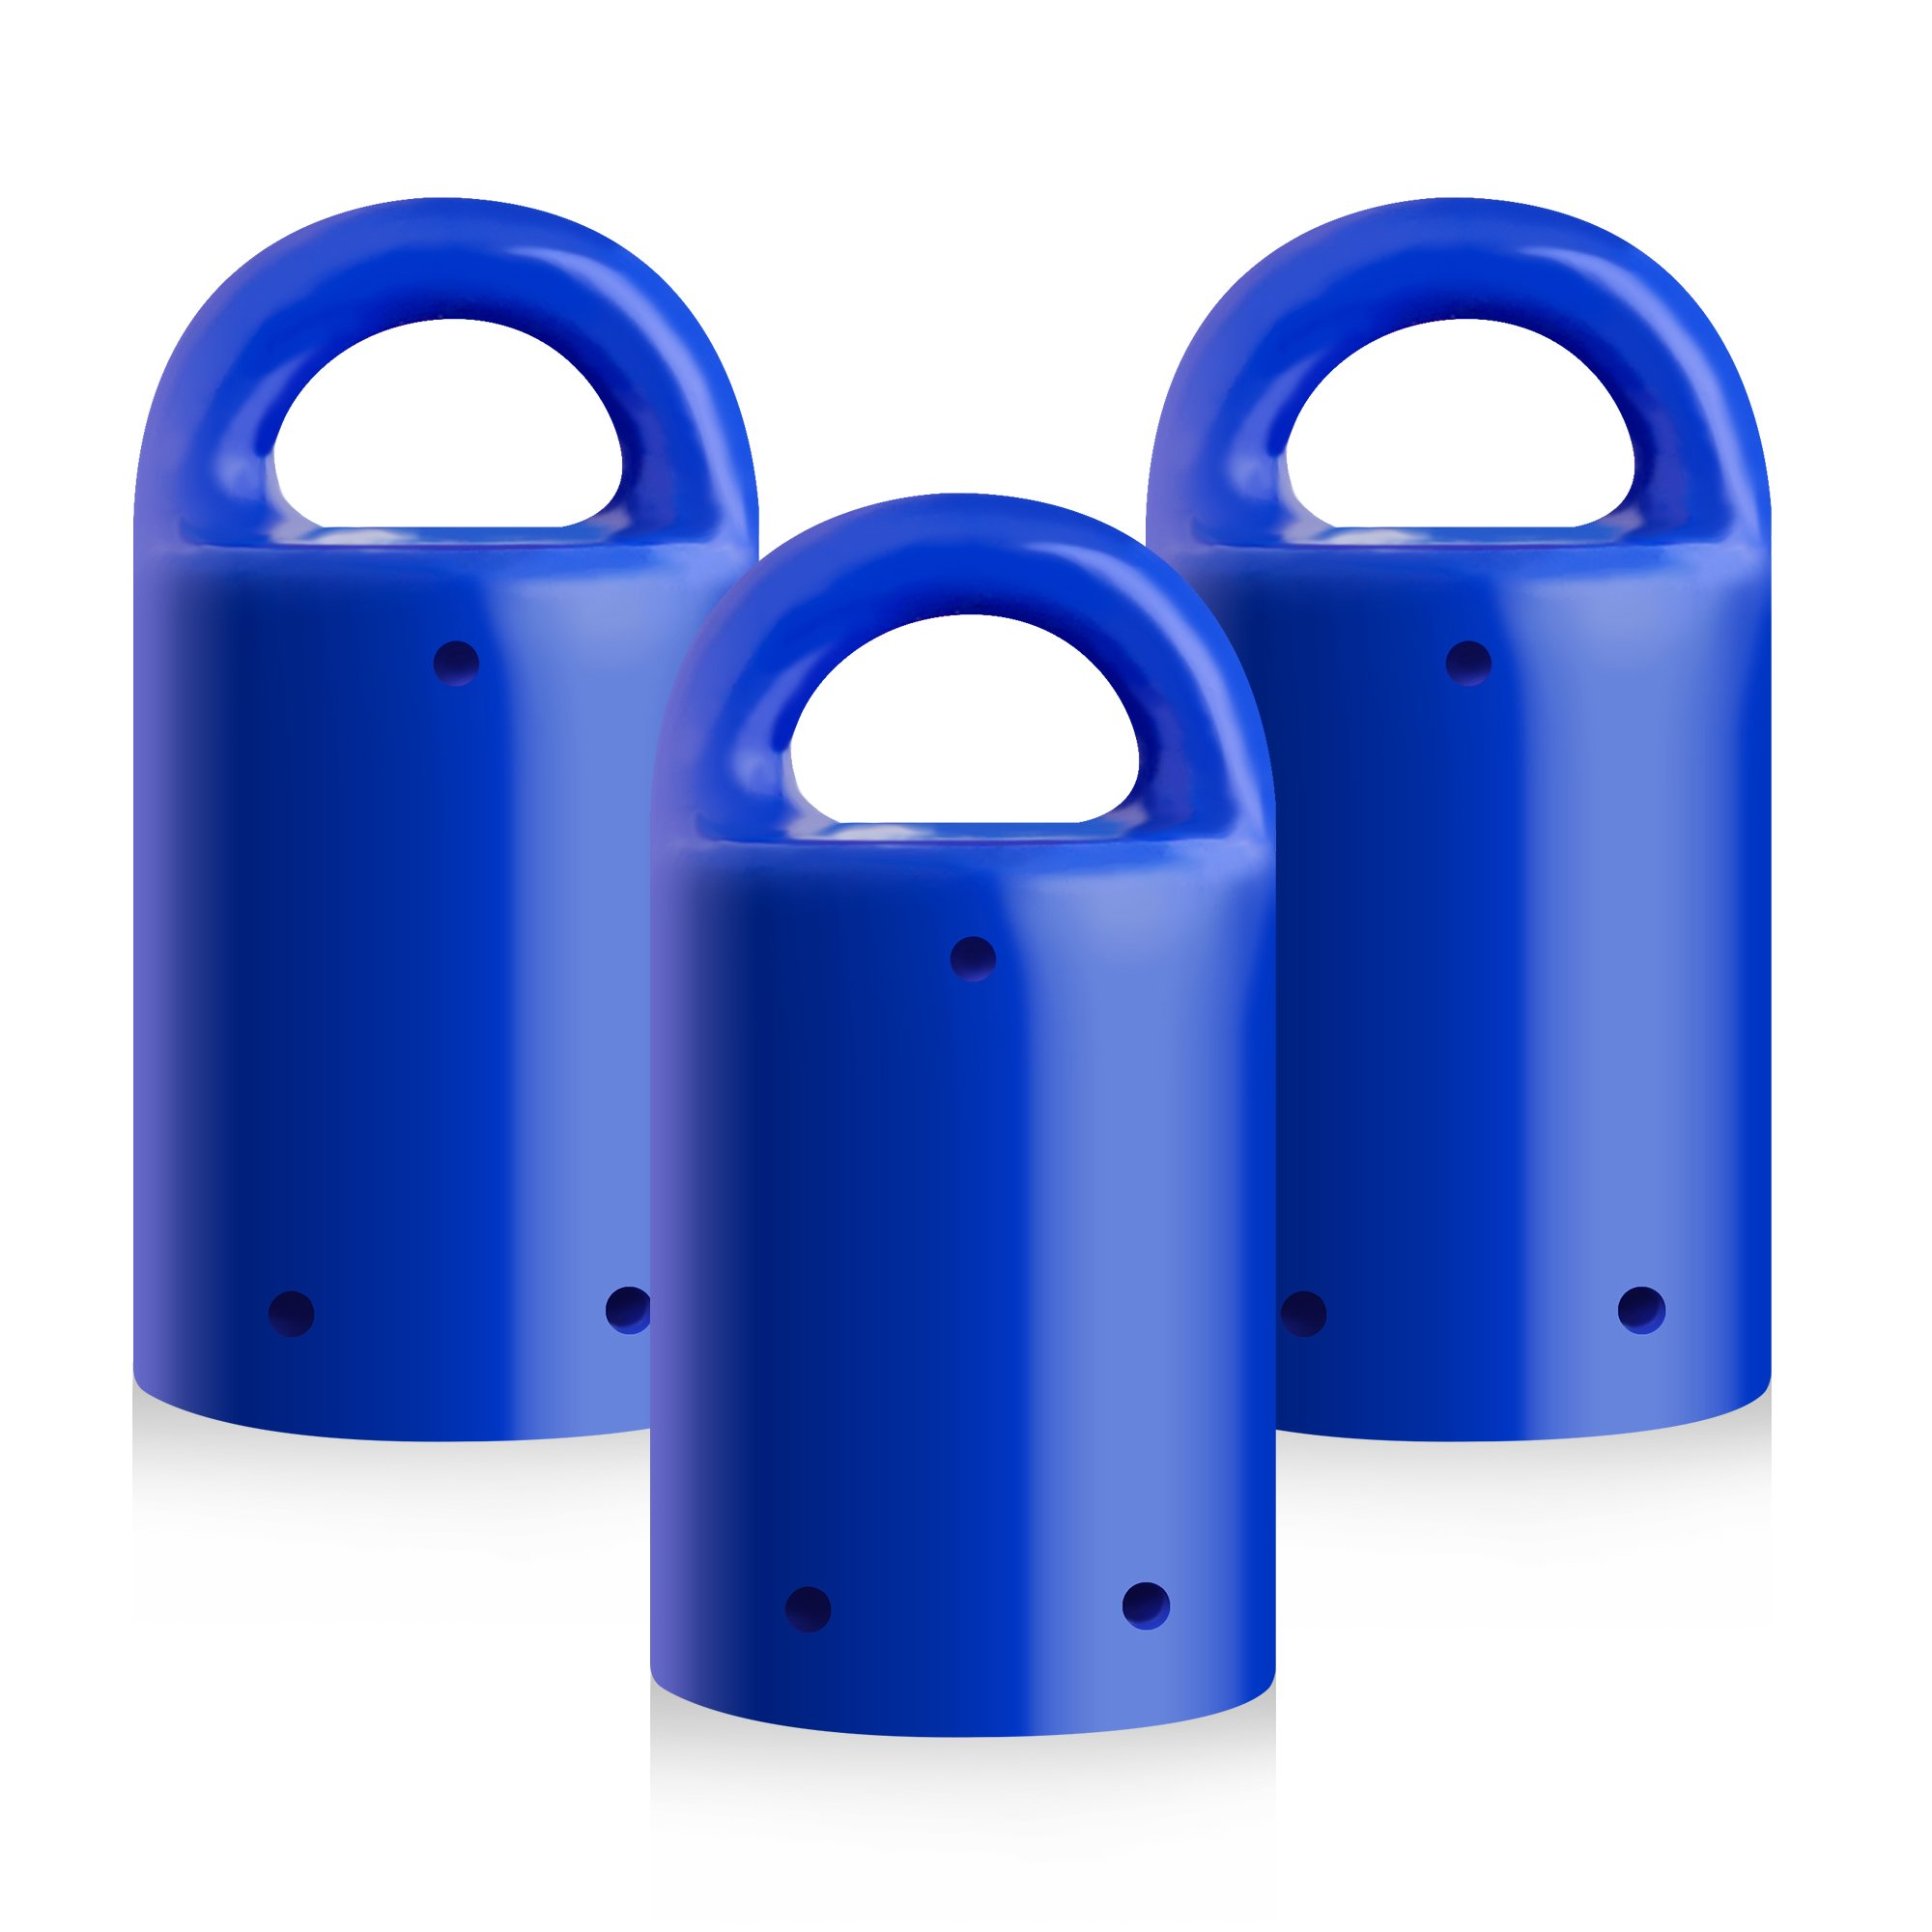 MagnetPal 3 pack Heavy-Duty Neodymium Anti-Rust Magnet, Best for Magnetic Stud Finder/Key Organizer/Indoor and Outdoor Multi Uses, Blue with Key Ring (SP-MPM3BL)